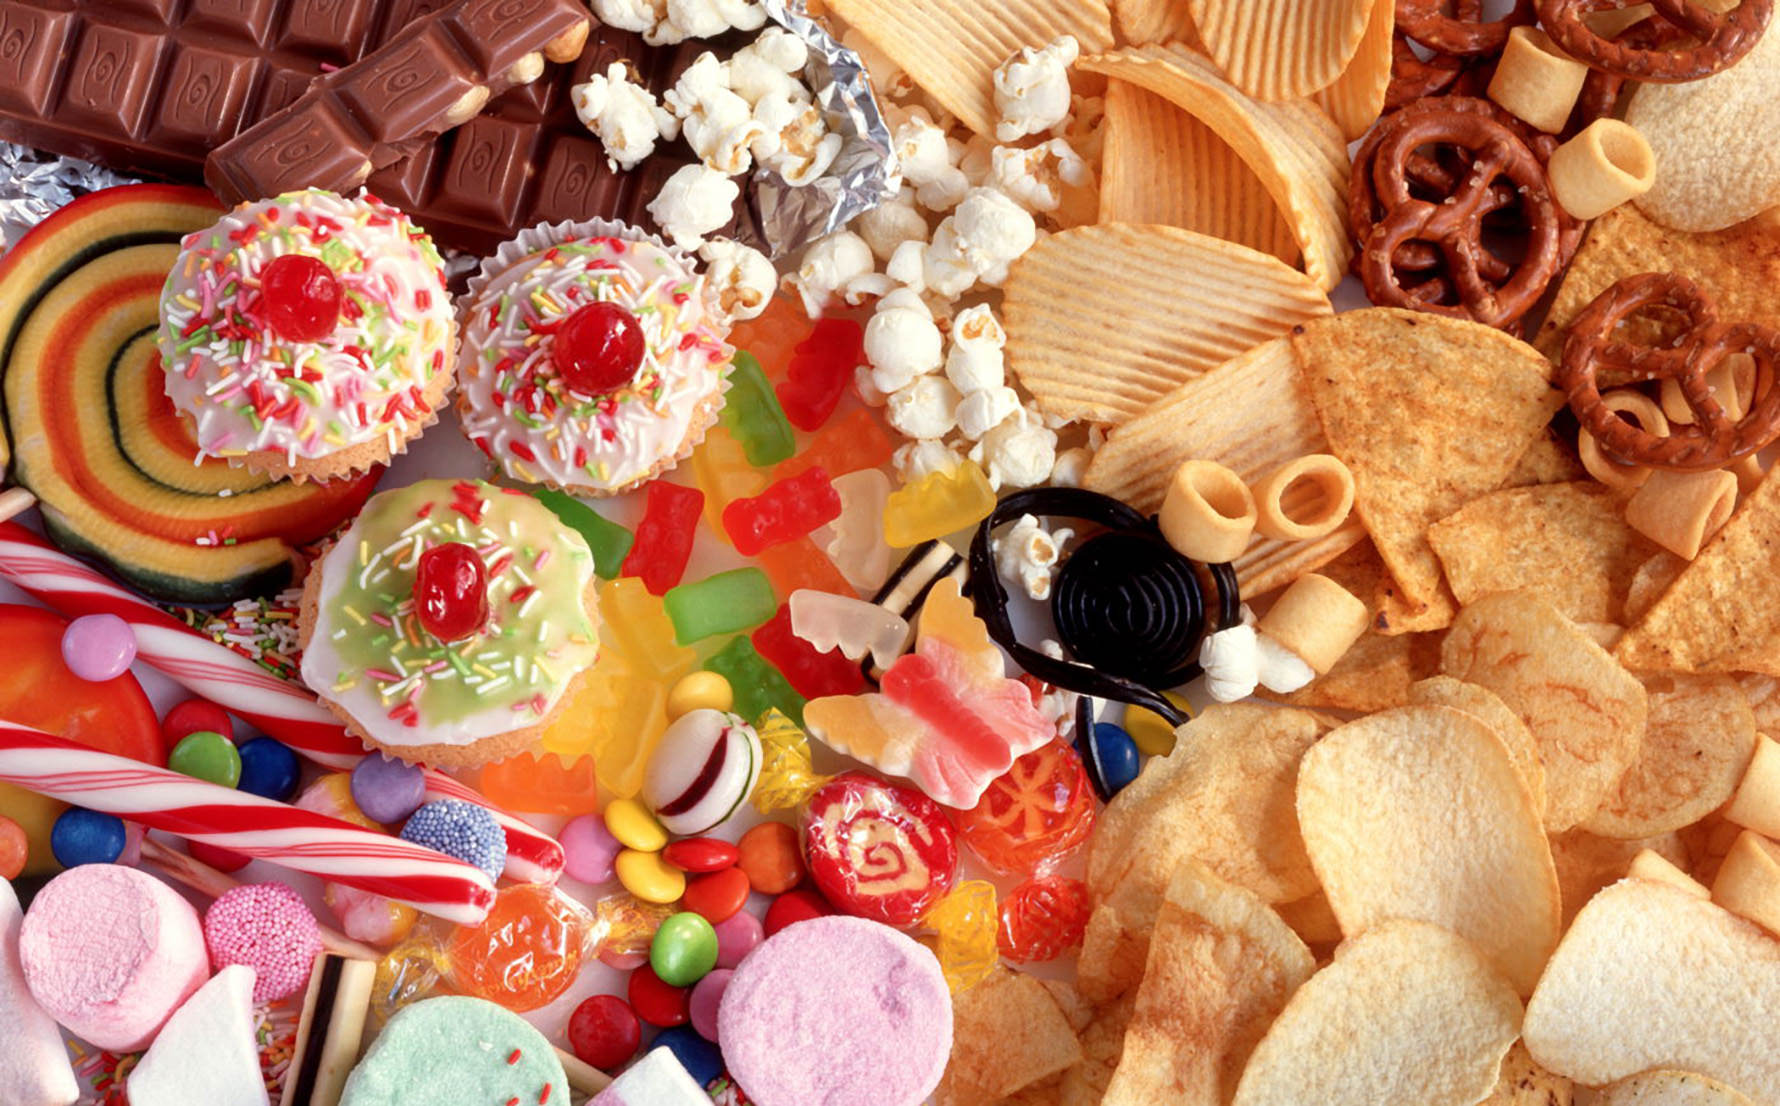 candy chips sweets unhealthy junk food